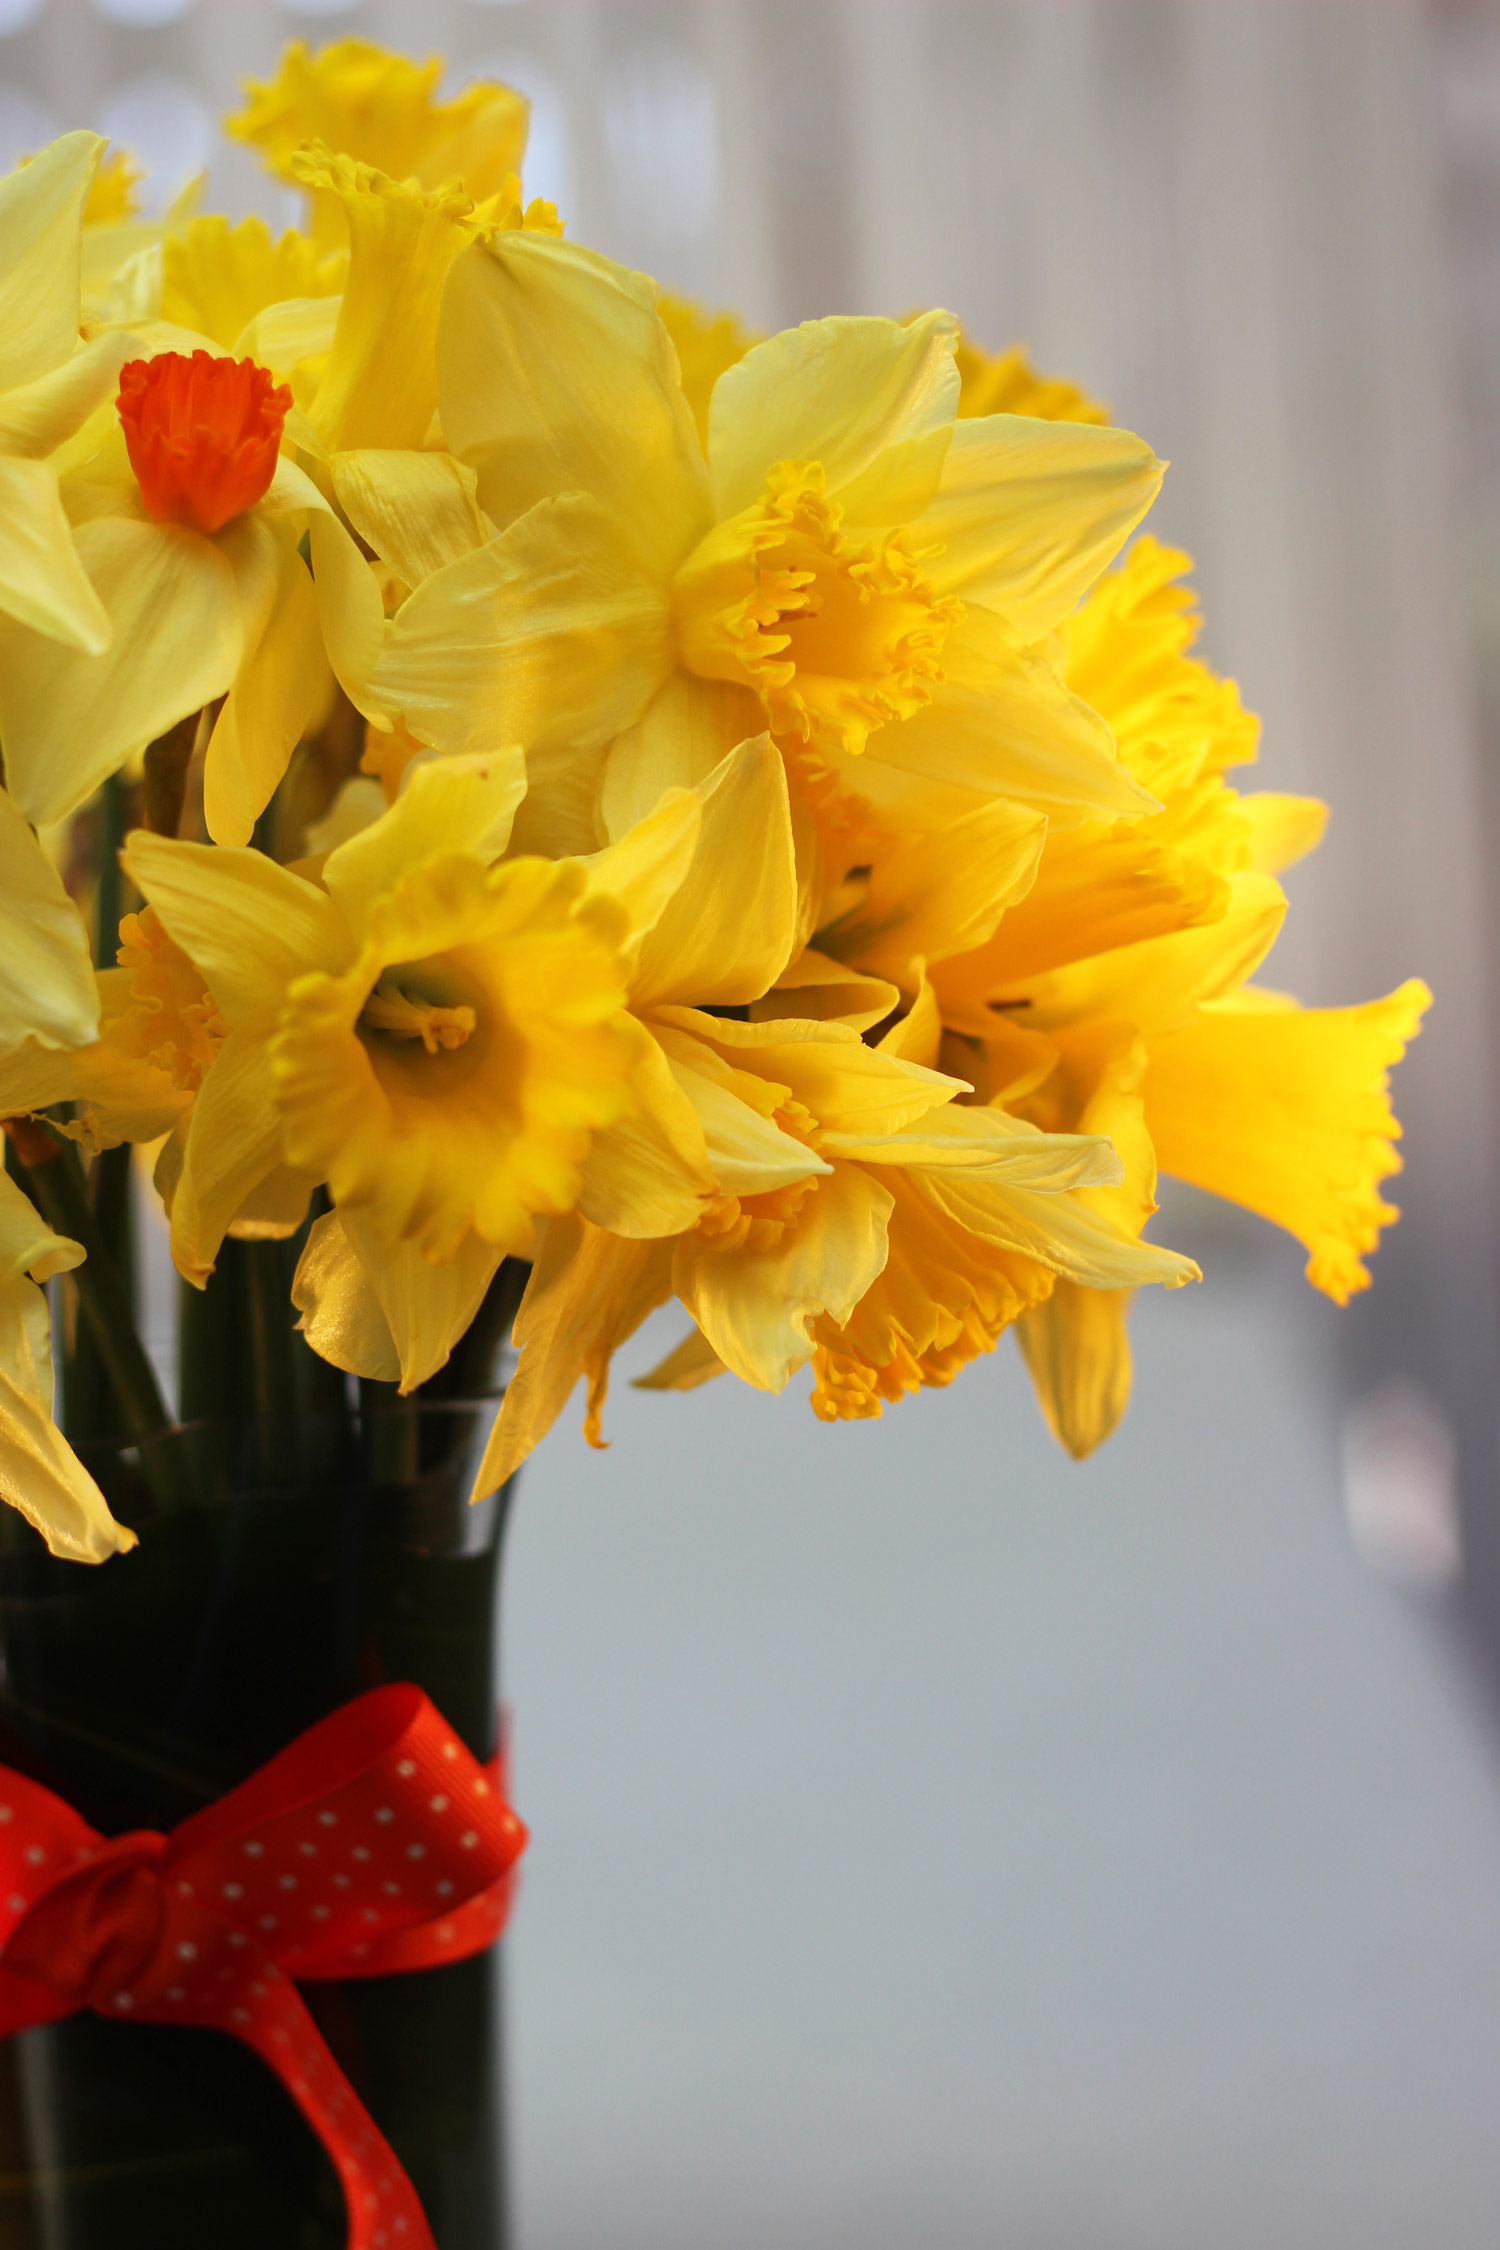 The ribbon echoes the color of the one orange centered daffodil.